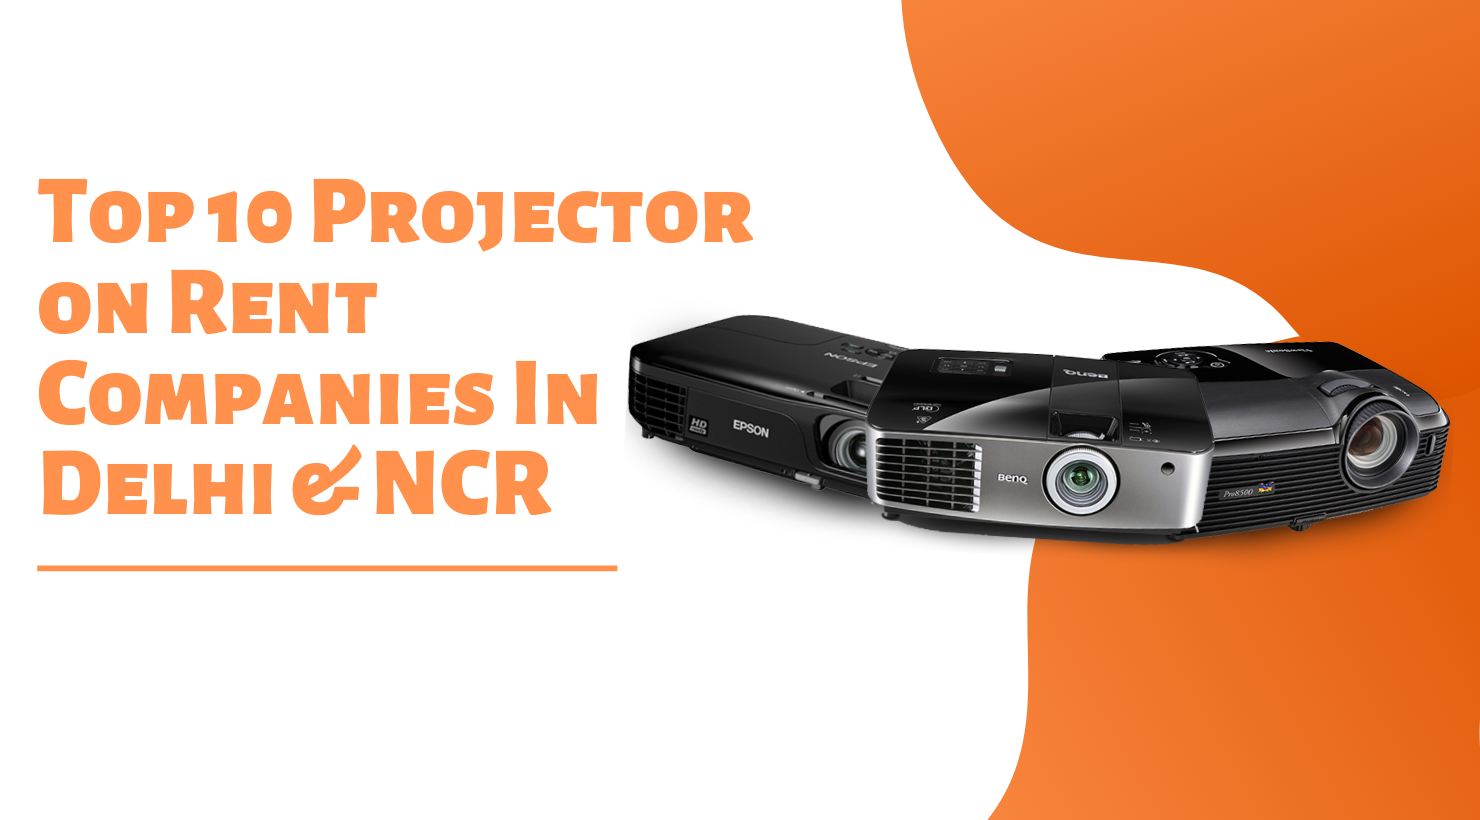 Top 10 Projector on Rent Companies In Delhi & NCR